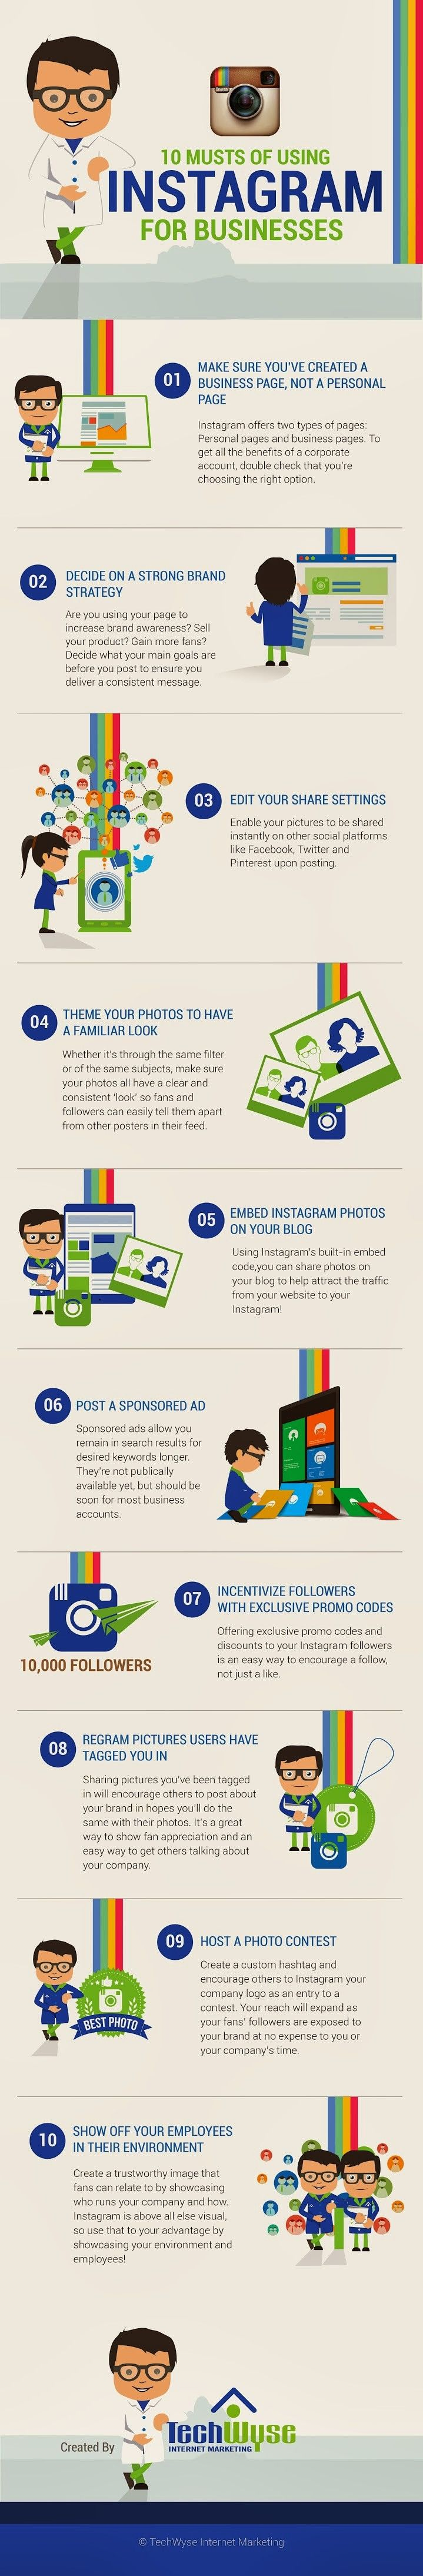 Instagram for #Business ? Check this out. Instagram for #B2B #Infographic